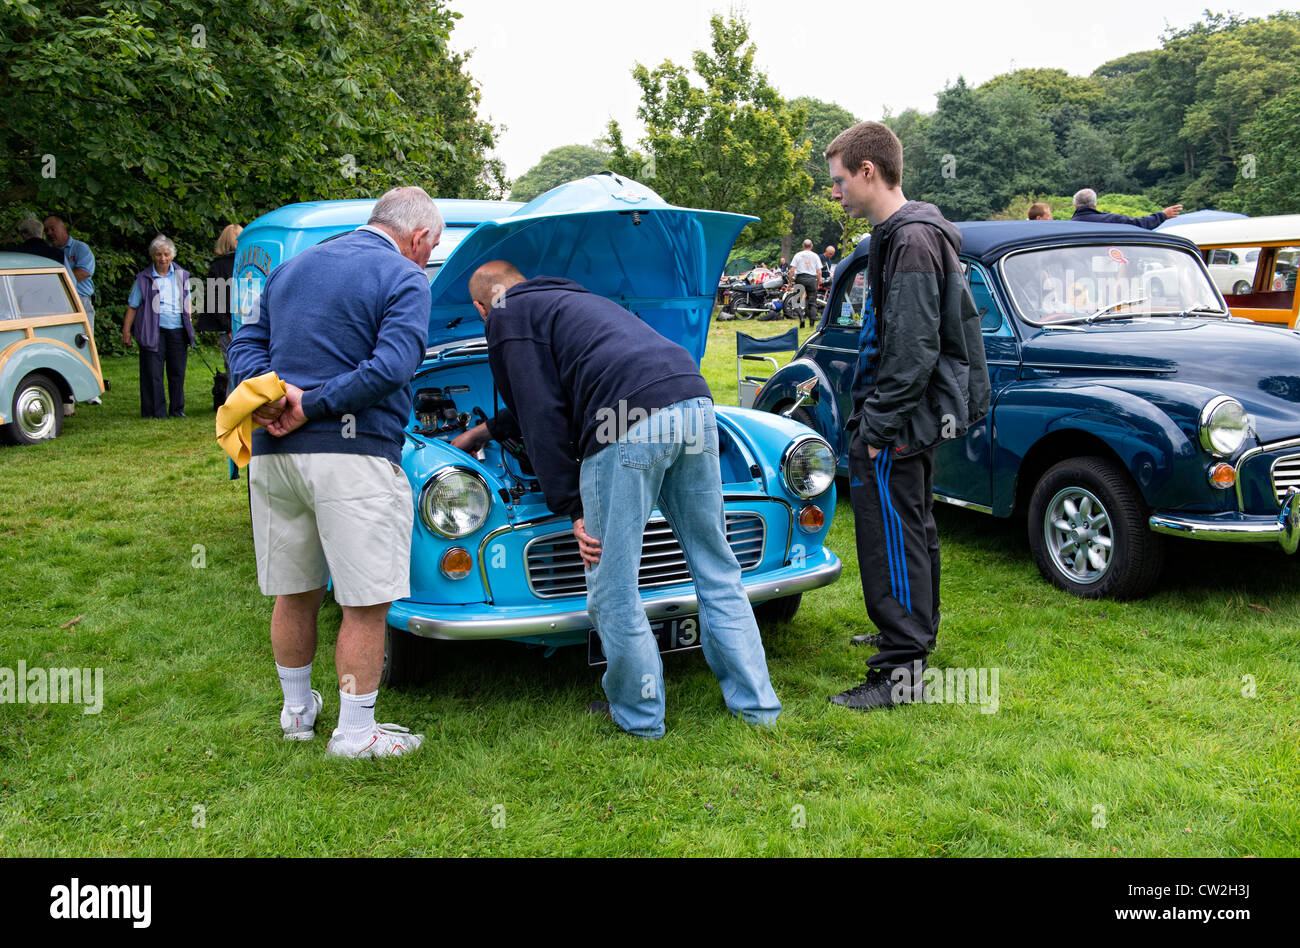 Classic Morris Minor motor car with enthusiasts at a classic car show at Lytham Hall in Lytham, Lancashire - Stock Image